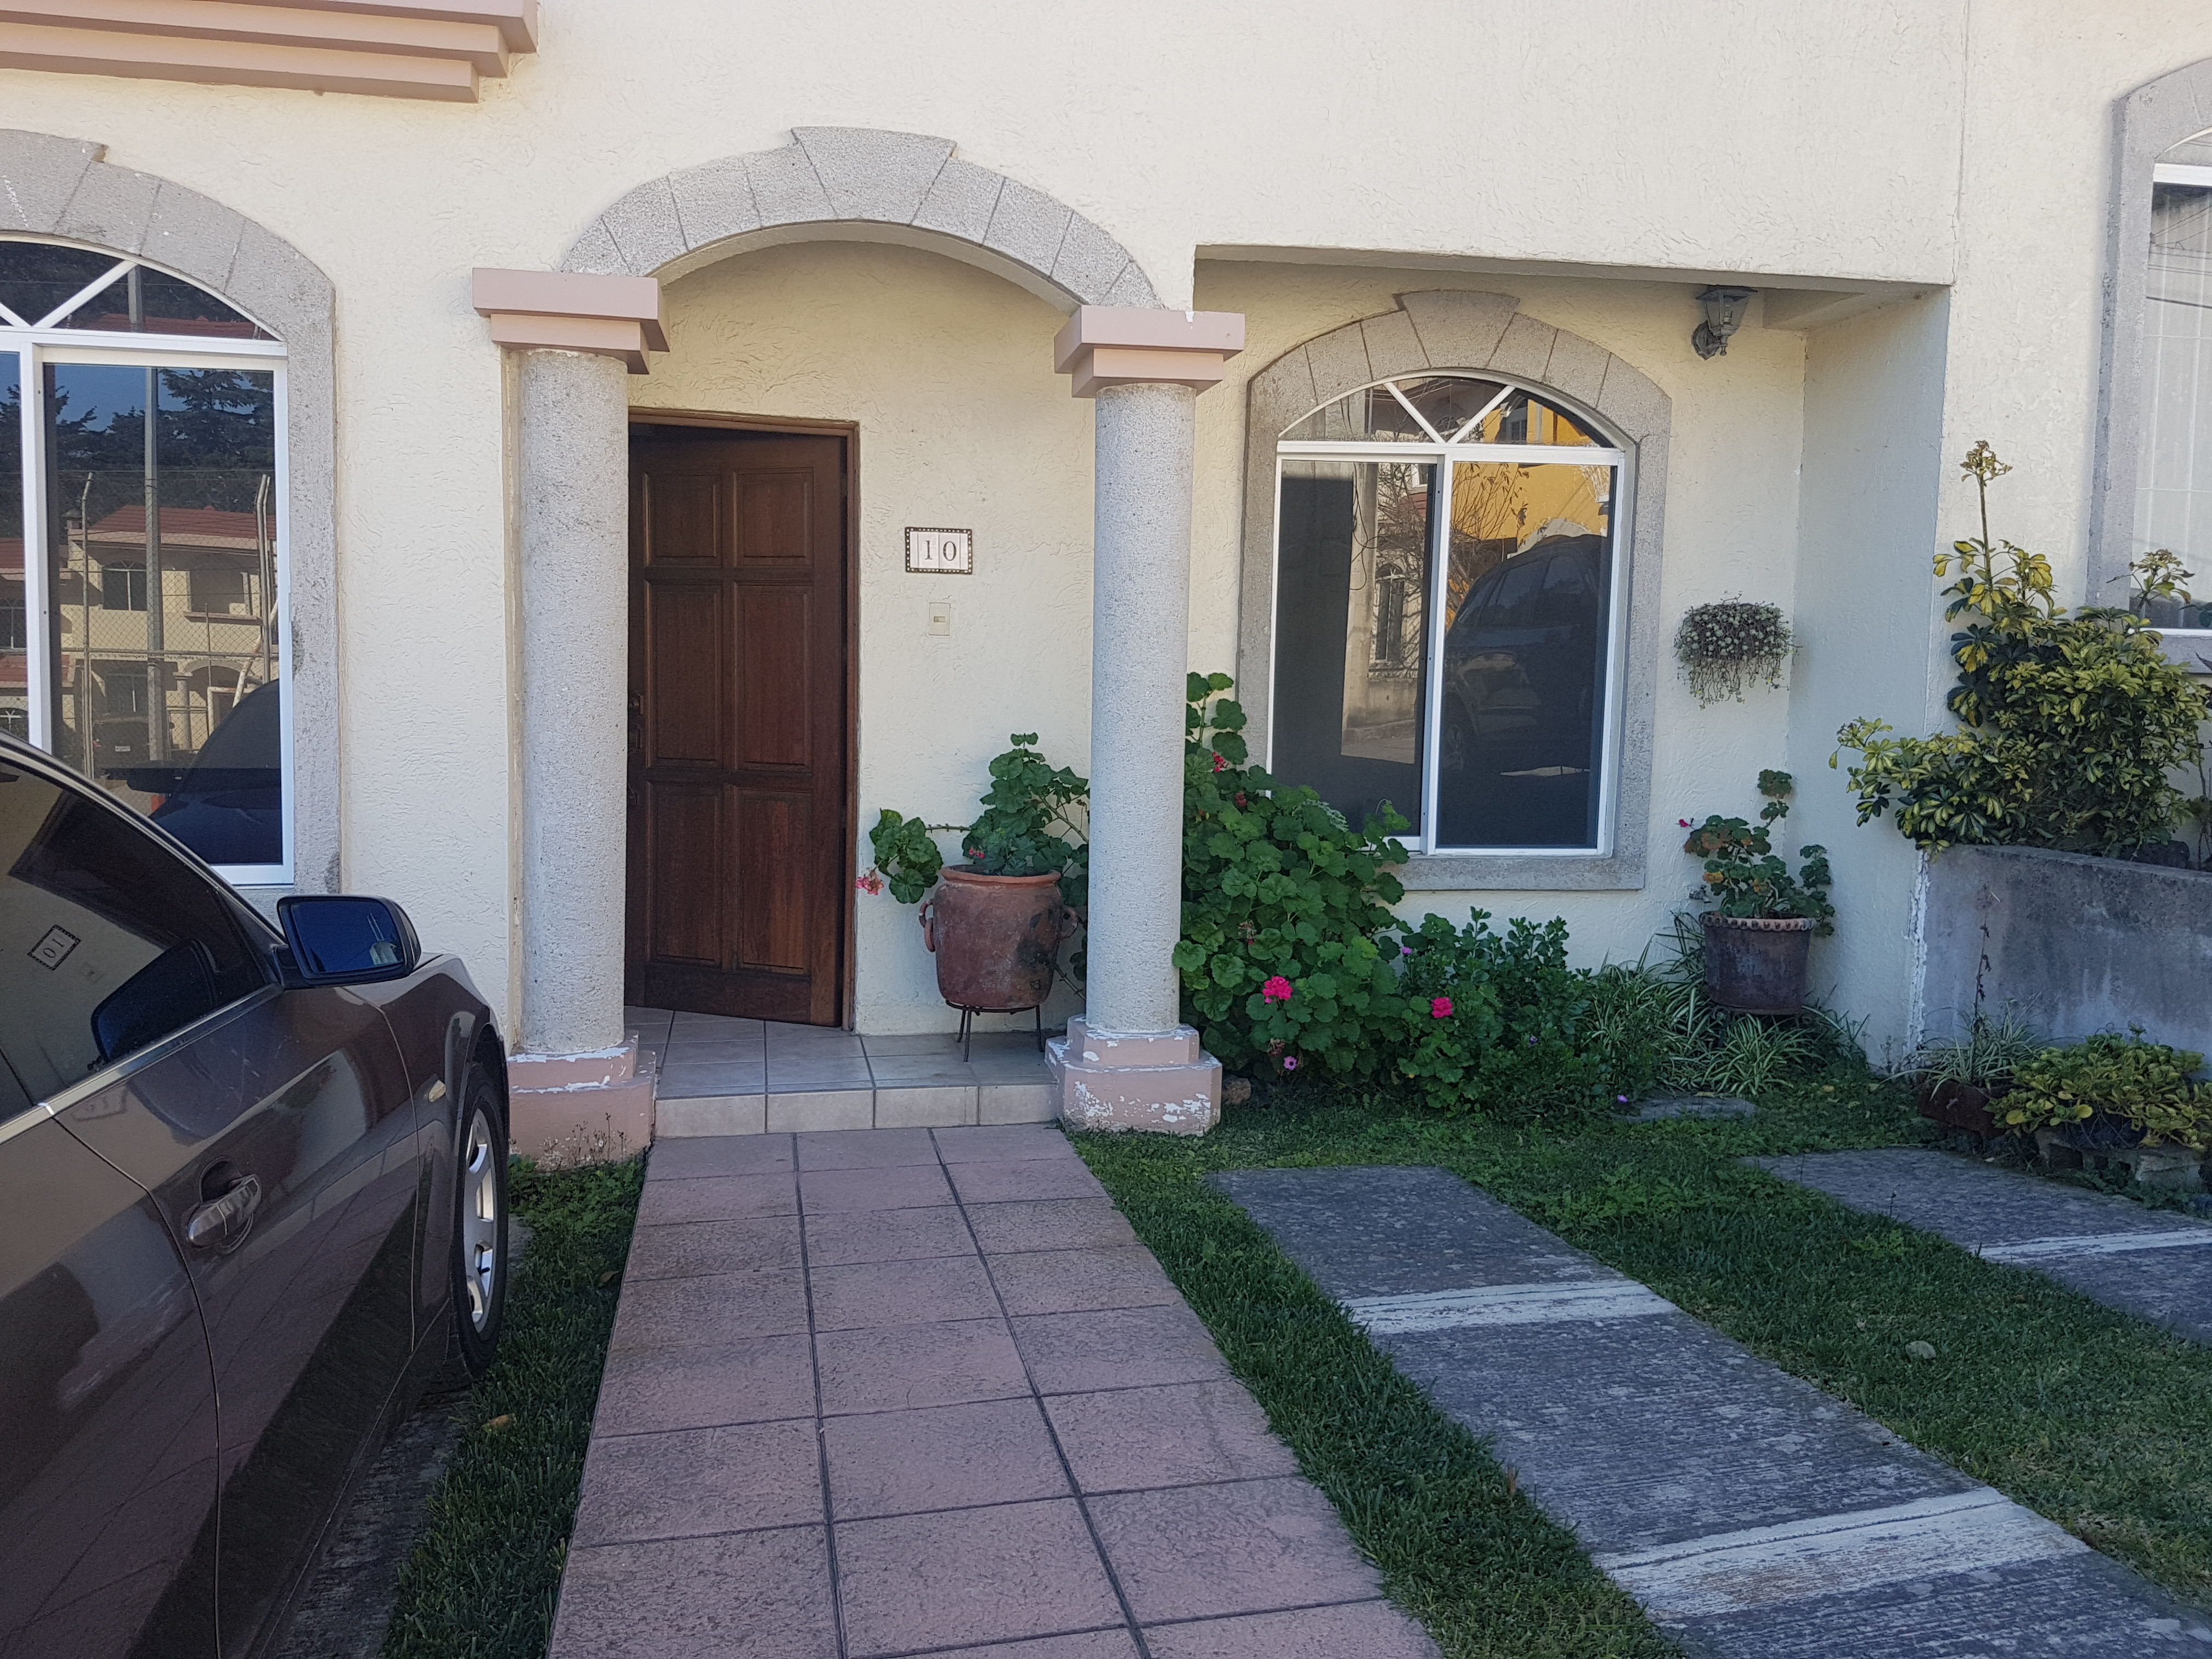 4592 NICE HOUSE FOR RENT IN SAN LUCAS (AVAILABLE FEBRUARY, 2019